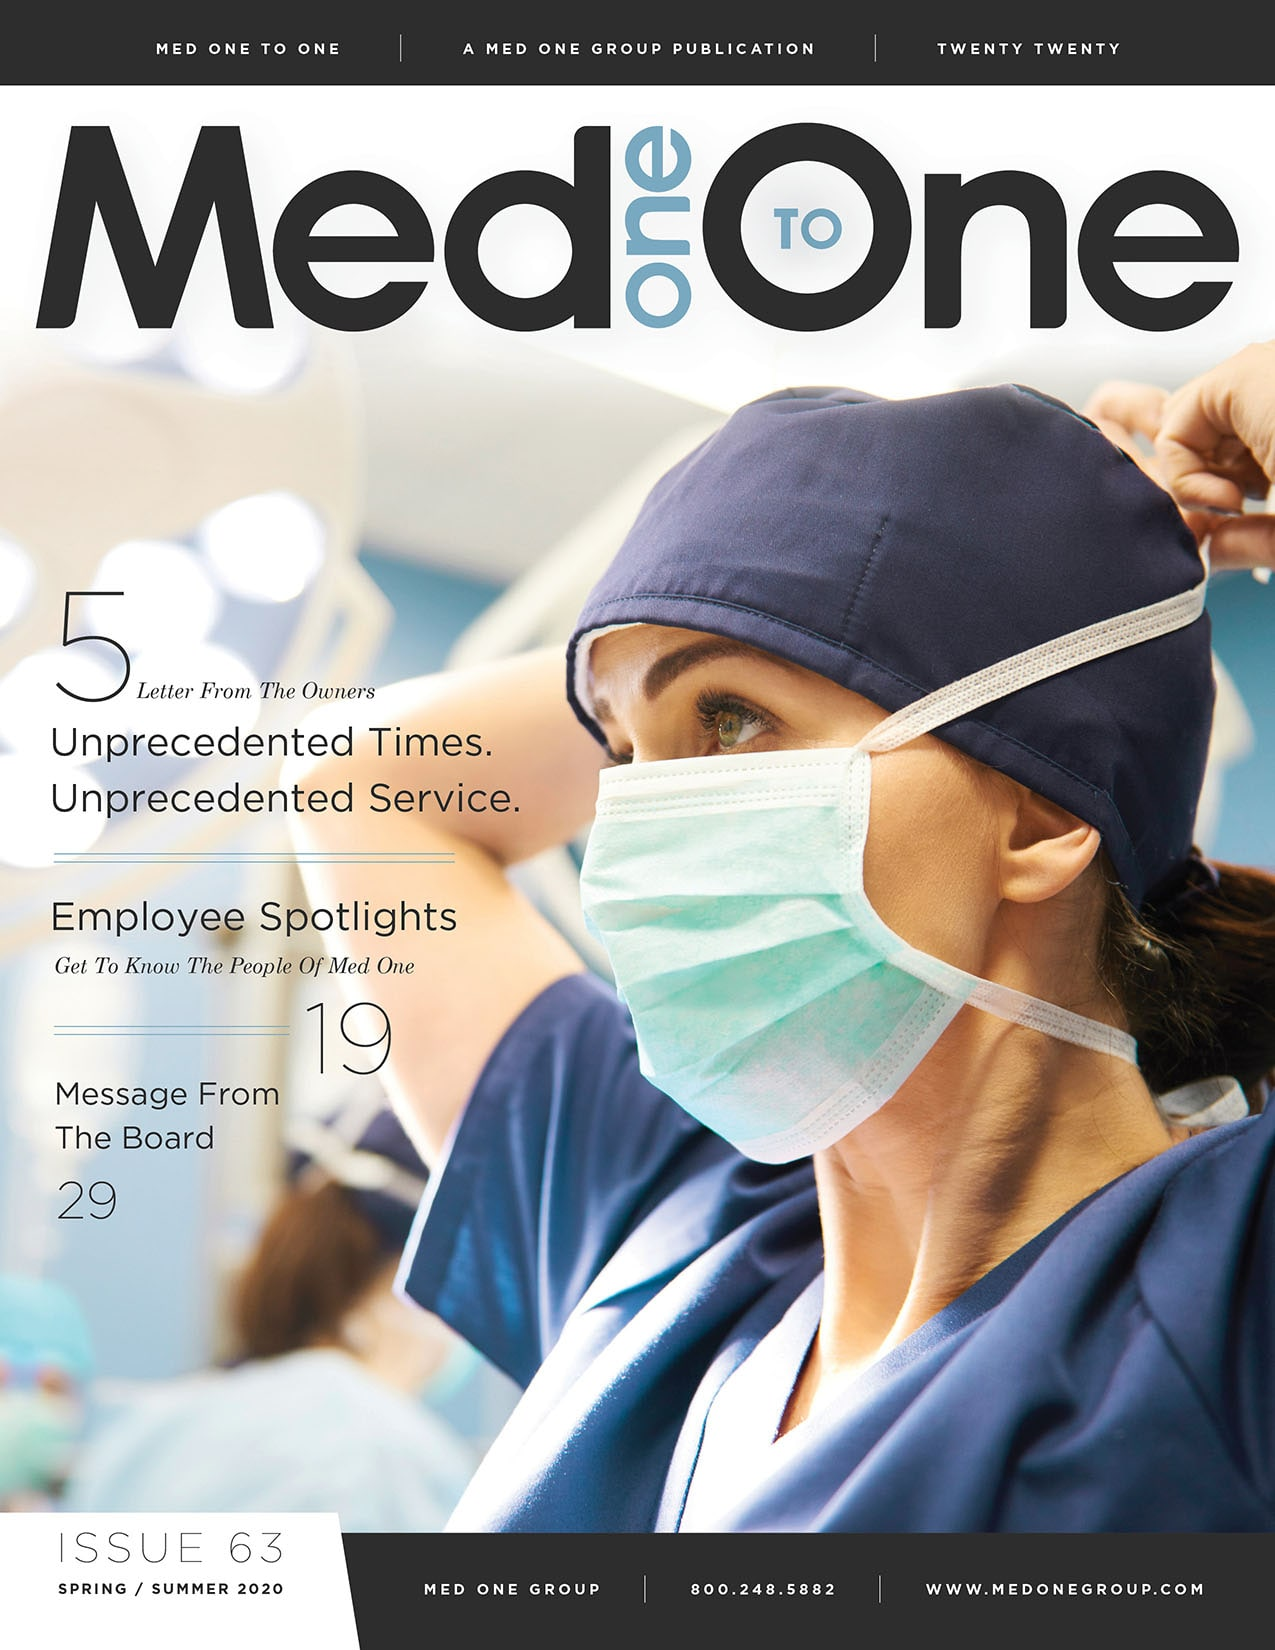 Med One to One Issue 63 Cover